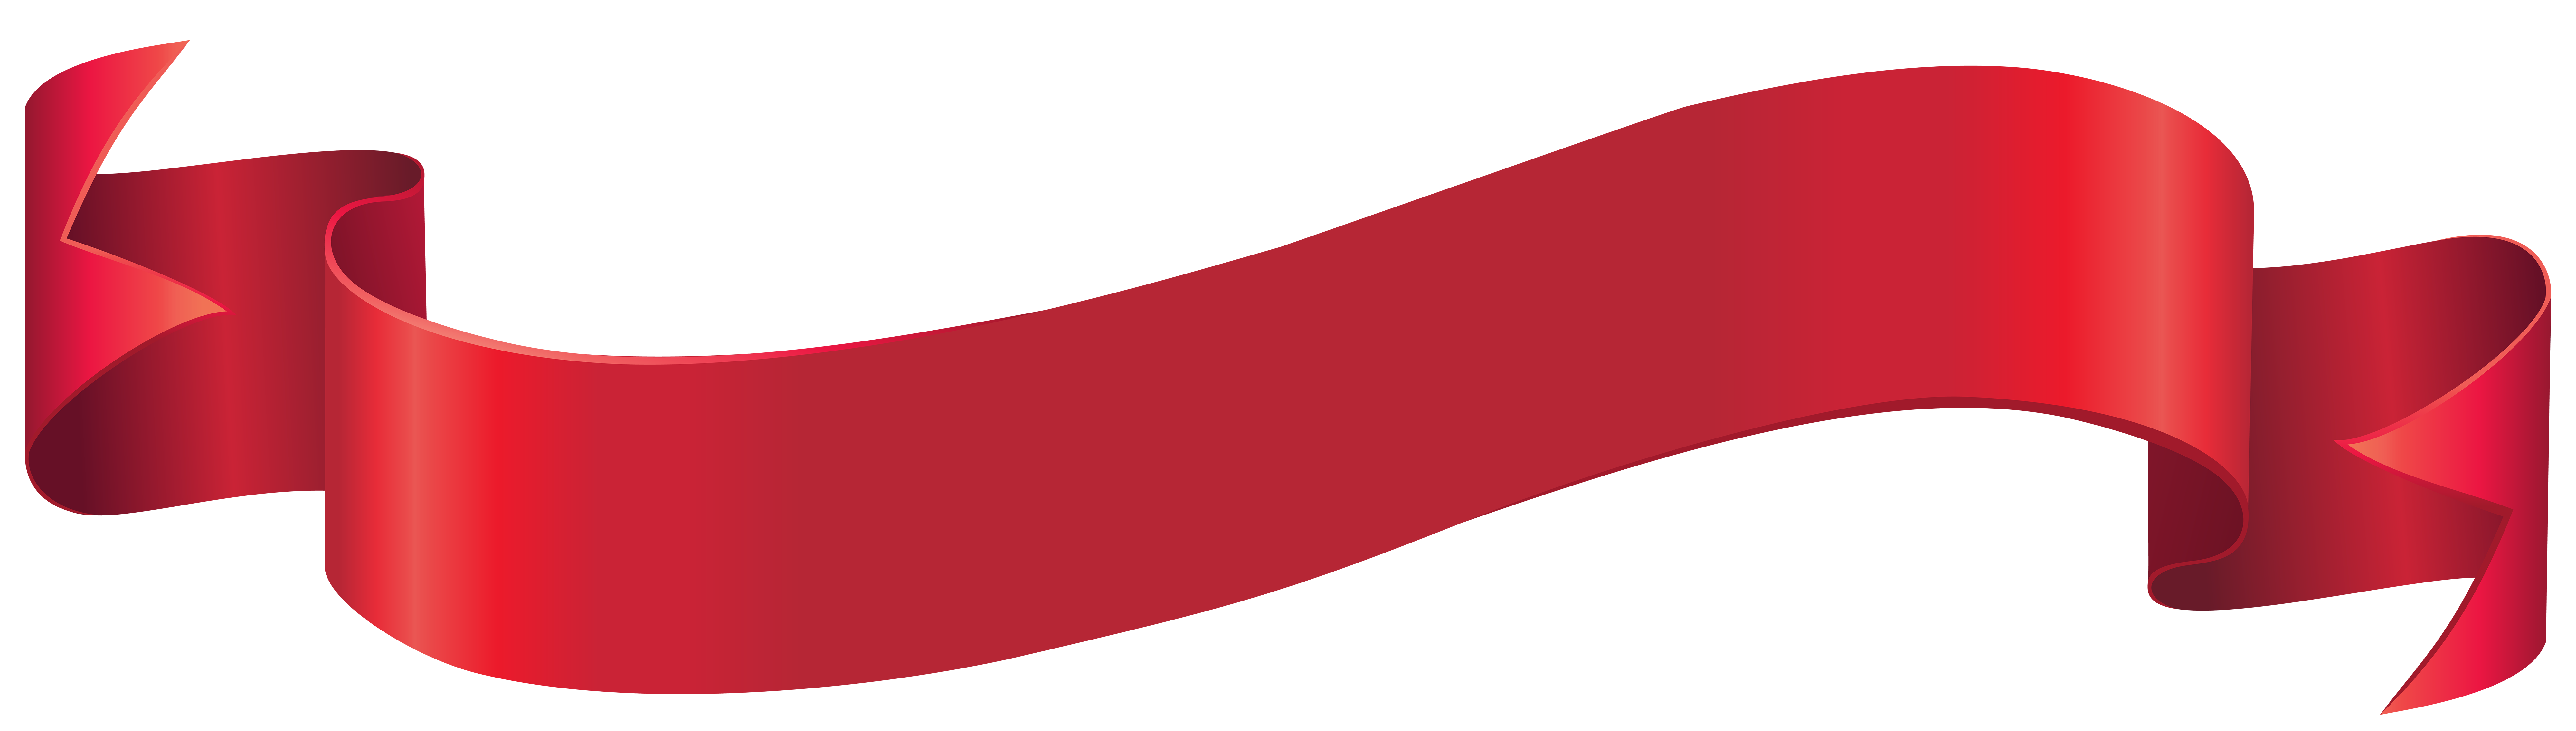 Red banner png. Clip art image gallery